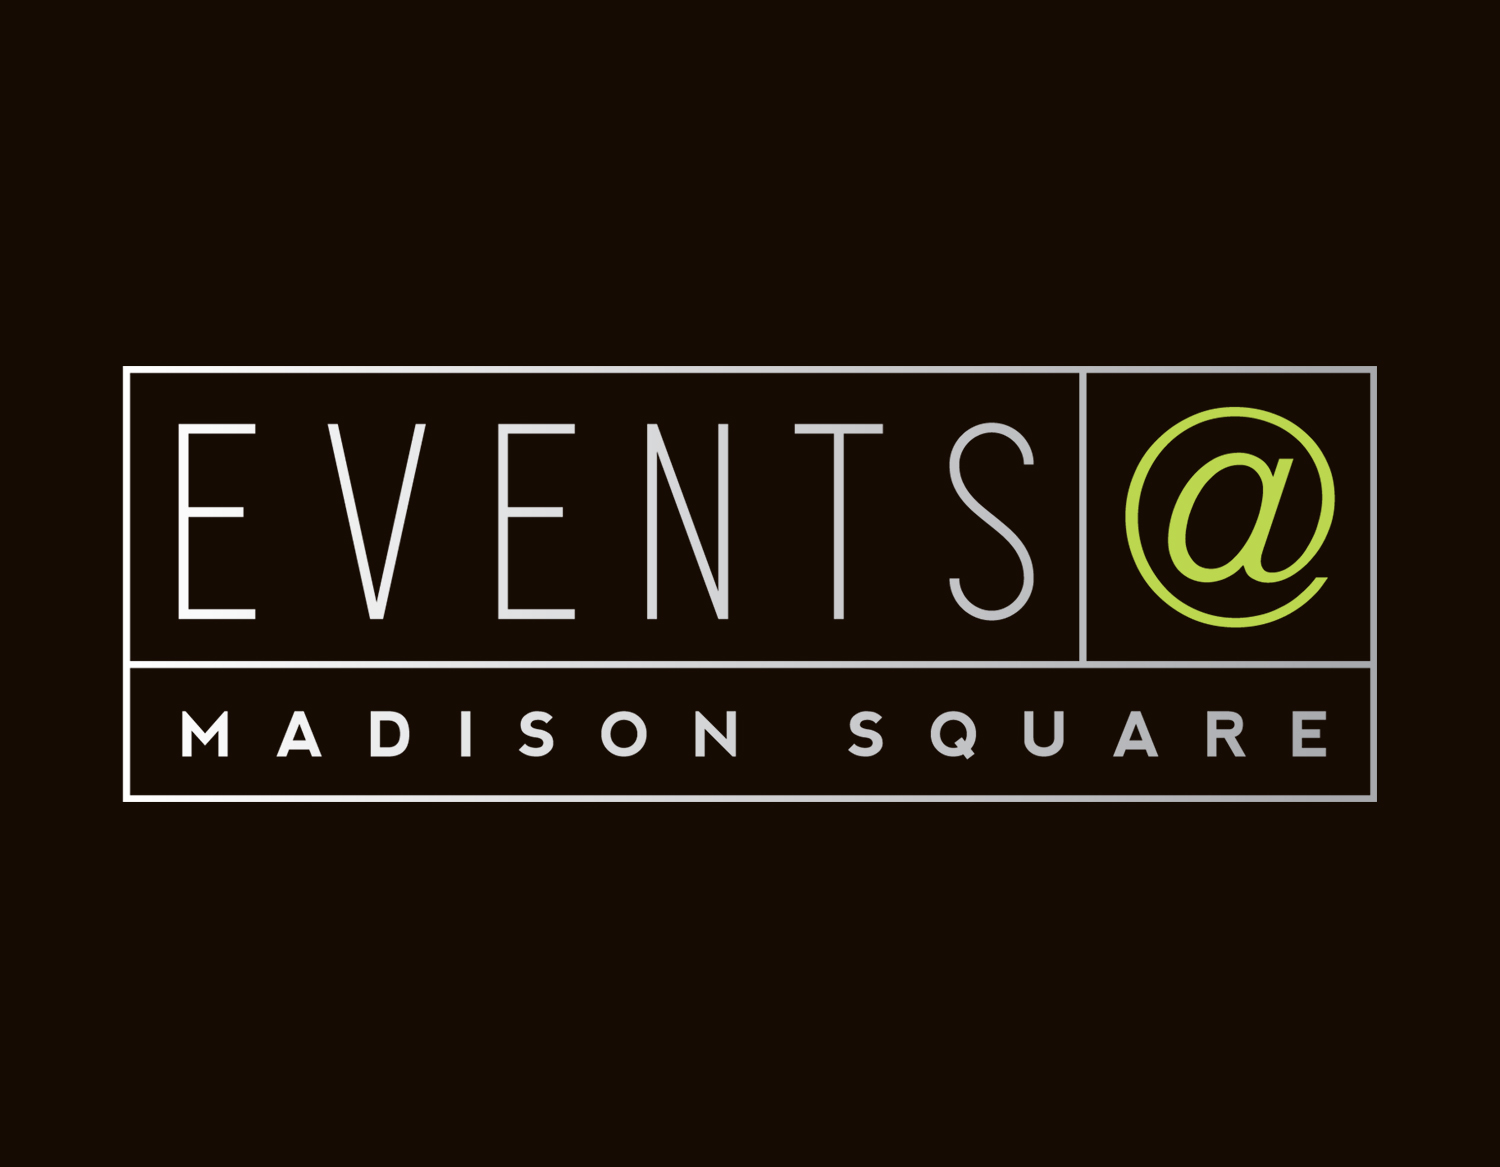 events-madison-square.jpg